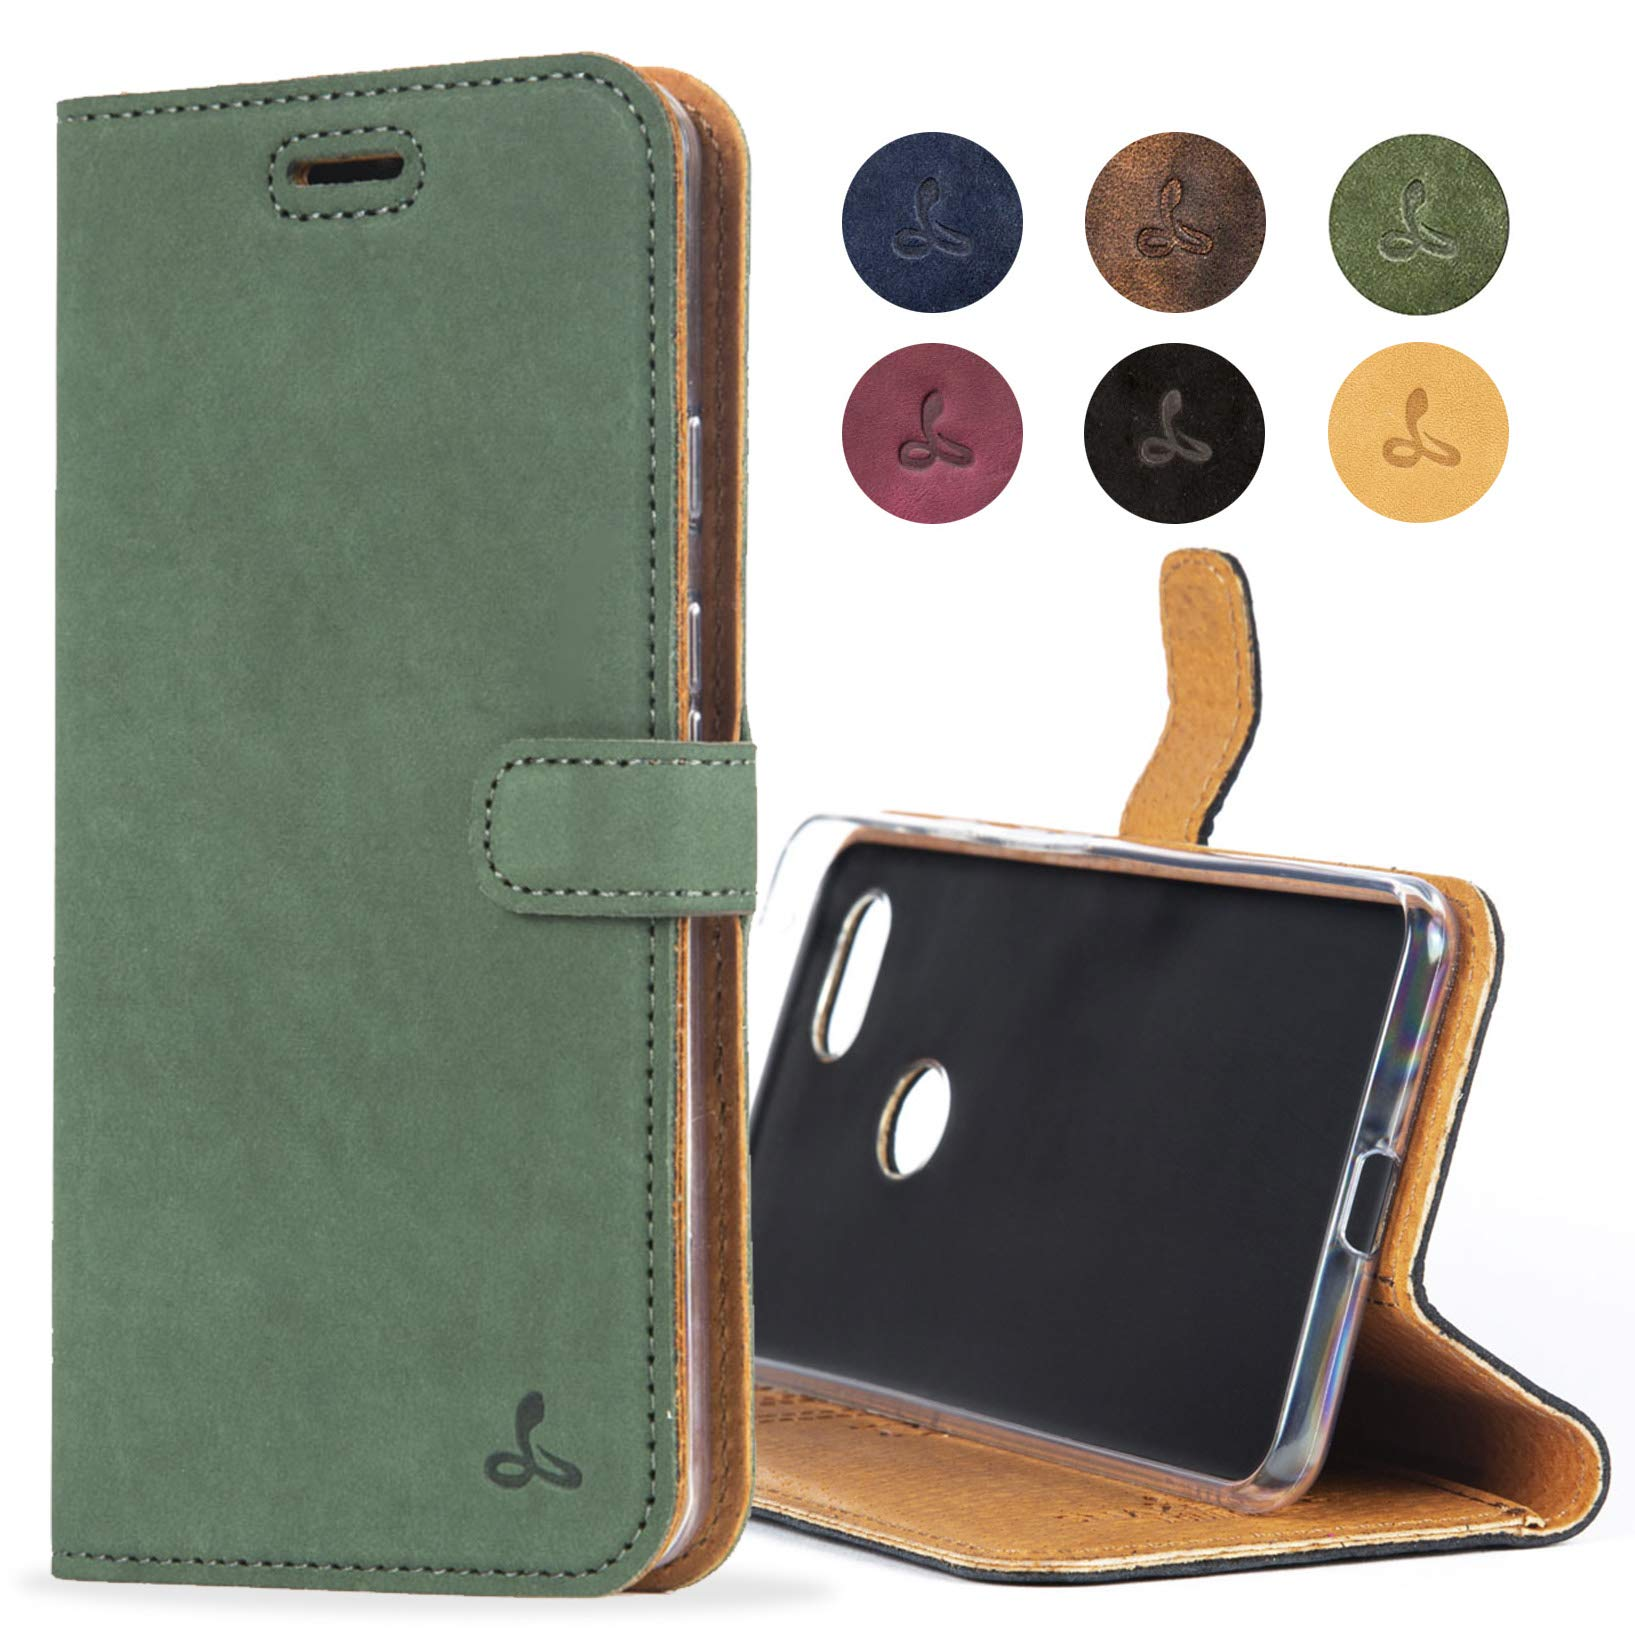 SnakeHive Google Pixel 3 Case, Luxury Genuine Leather Wallet with Viewing Stand and Card Slots, Flip Cover Gift Boxed and Handmade in Europe for Google Pixel 3 - (Dark Green)